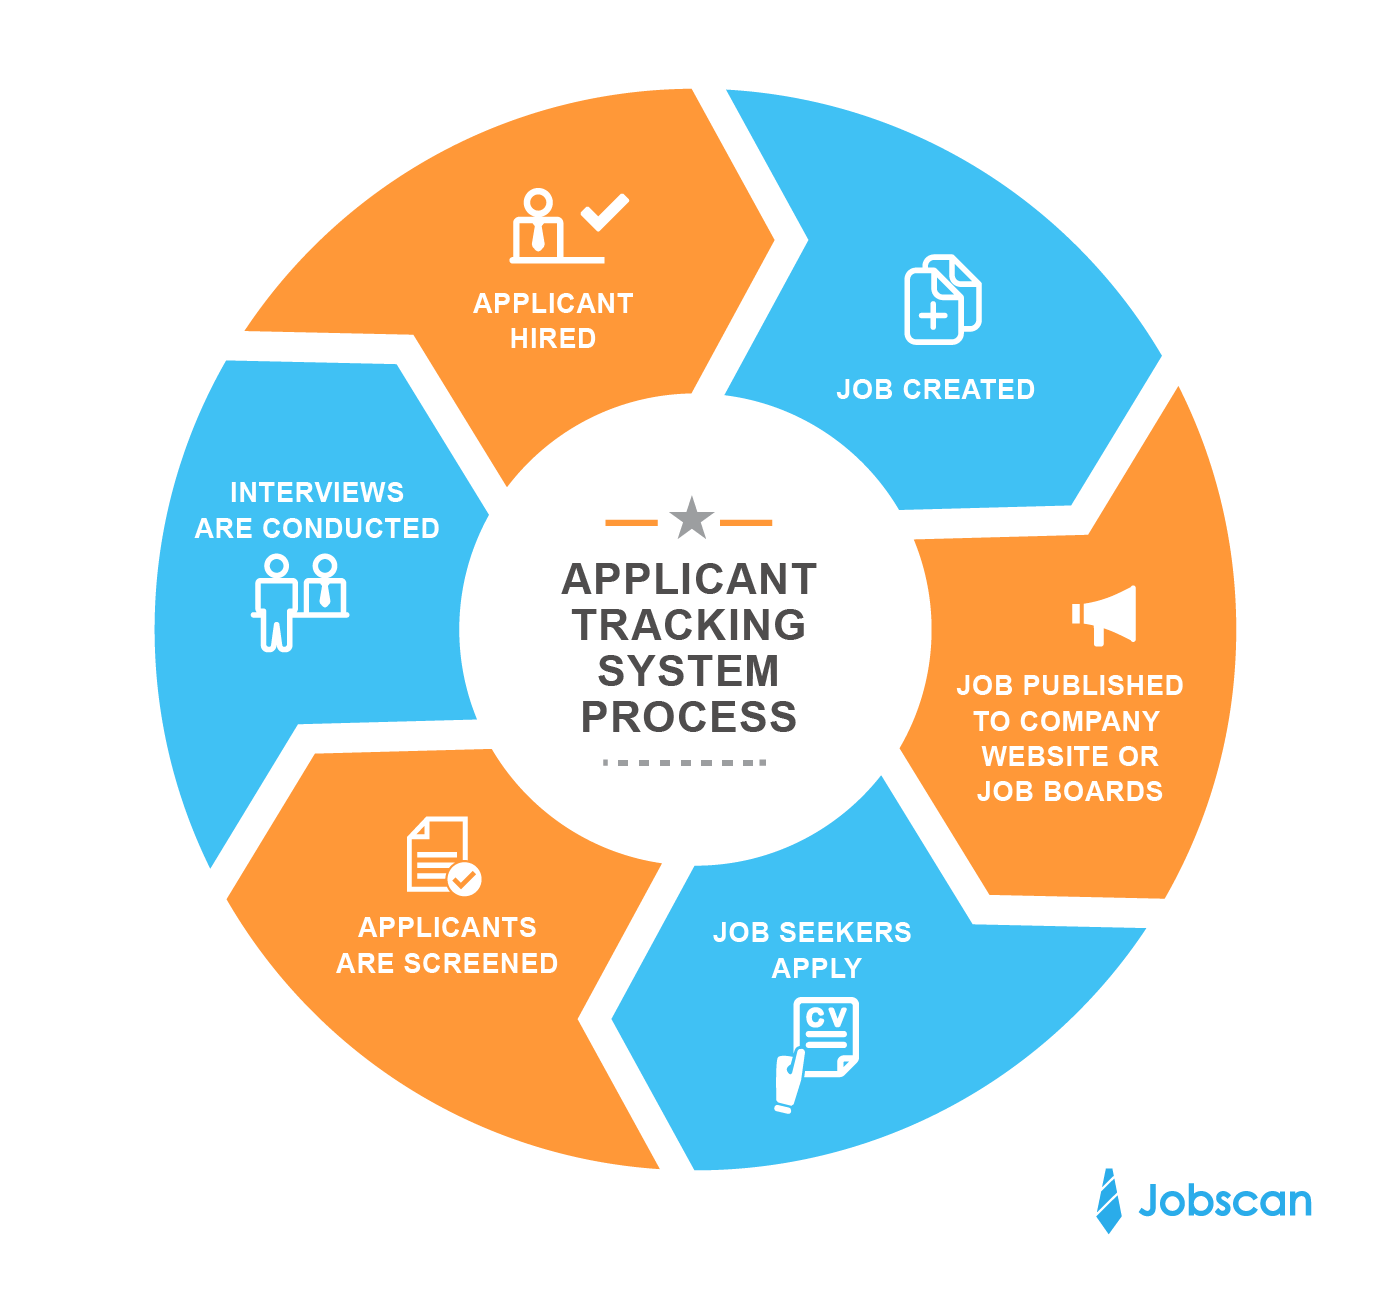 Careersorg Career Resources Career Guide Online Applicant Tracking Systems Jobscan